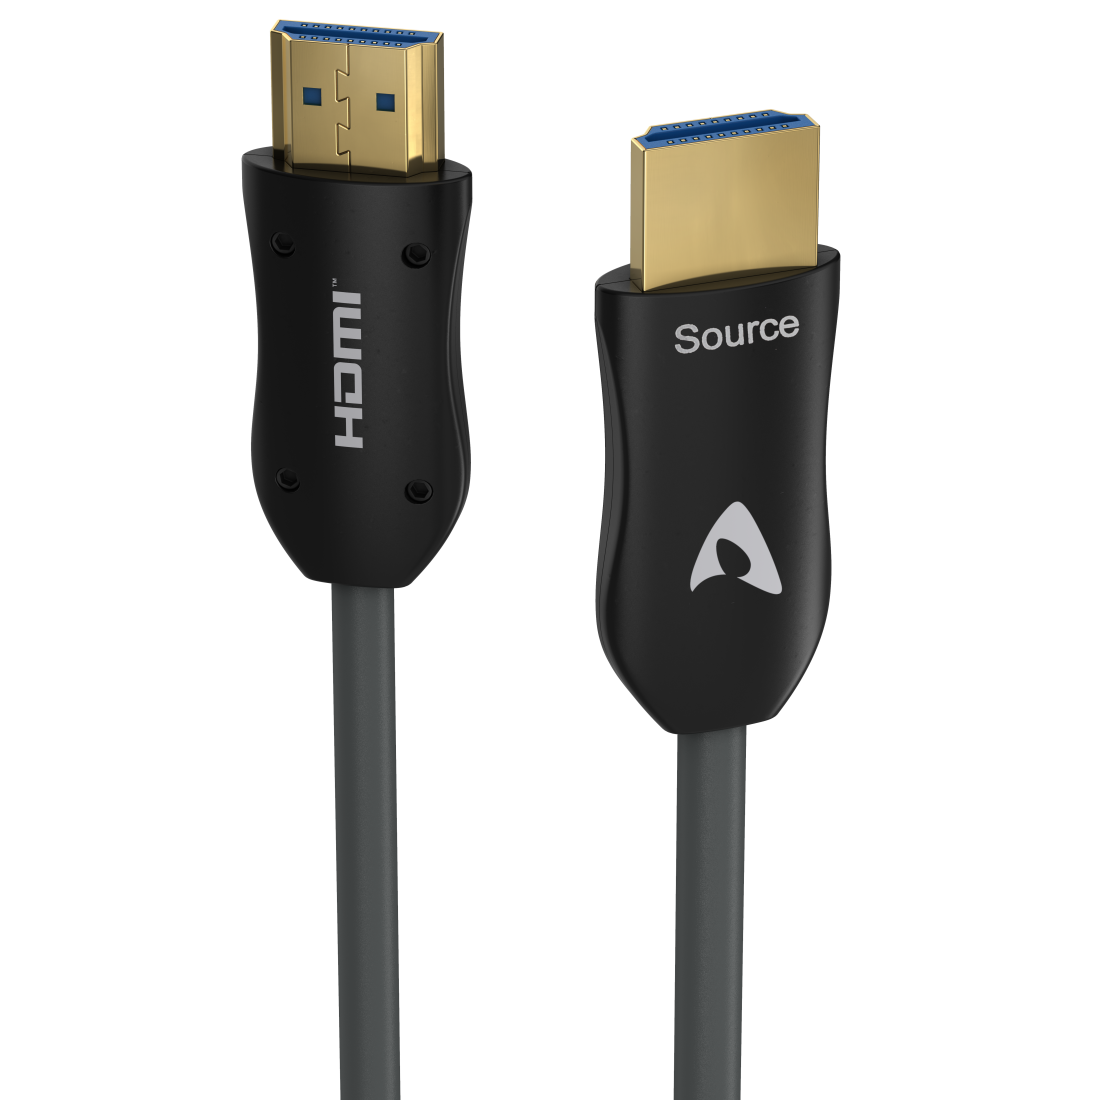 abx High-Res Image - Avinity, Optical, Active HDMI™ Cable, ultra-thin, plug-plug, gold-plated, 50m